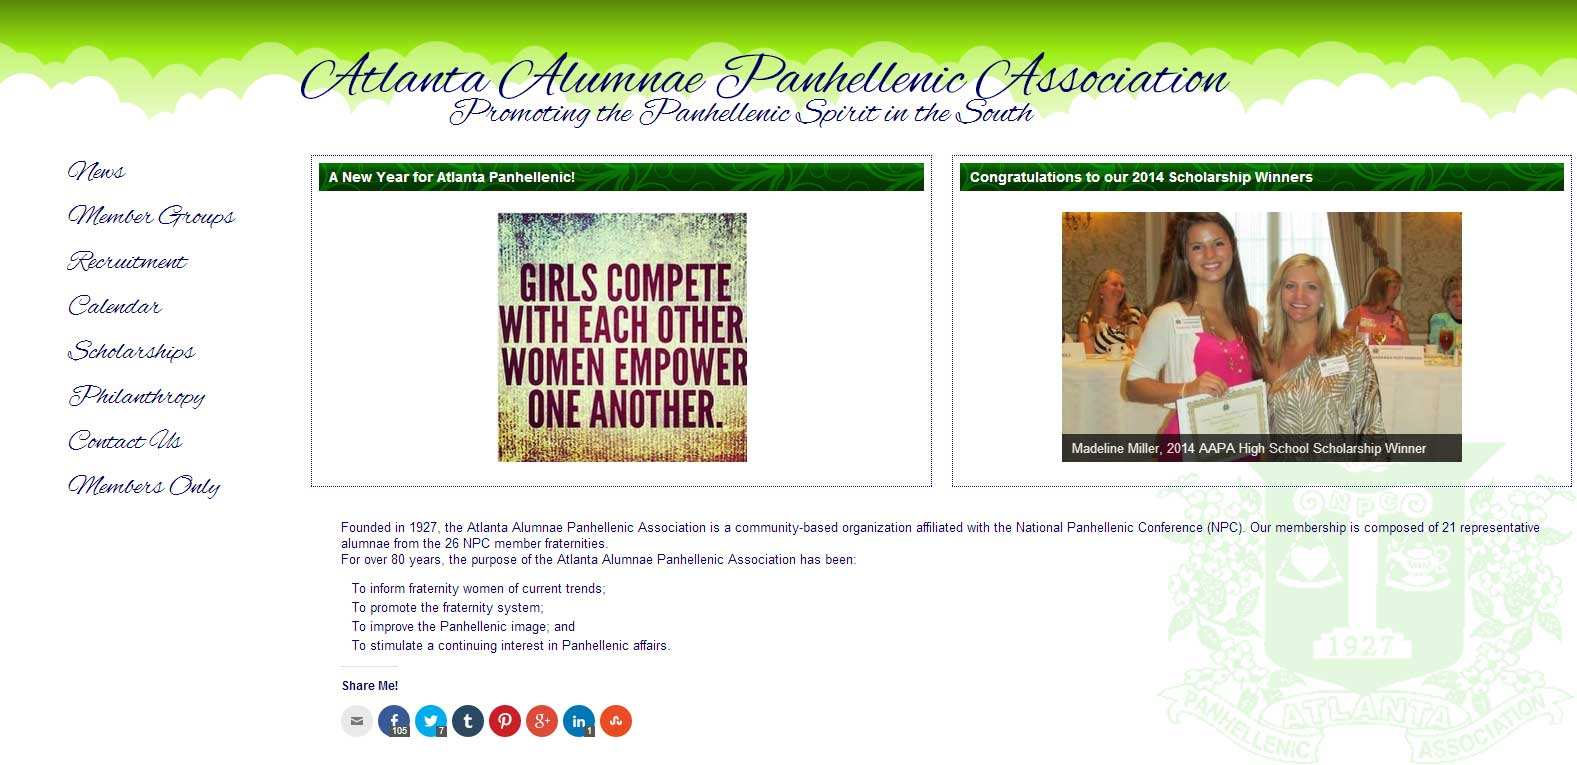 Atlanta Alumnae Panhellenic Association